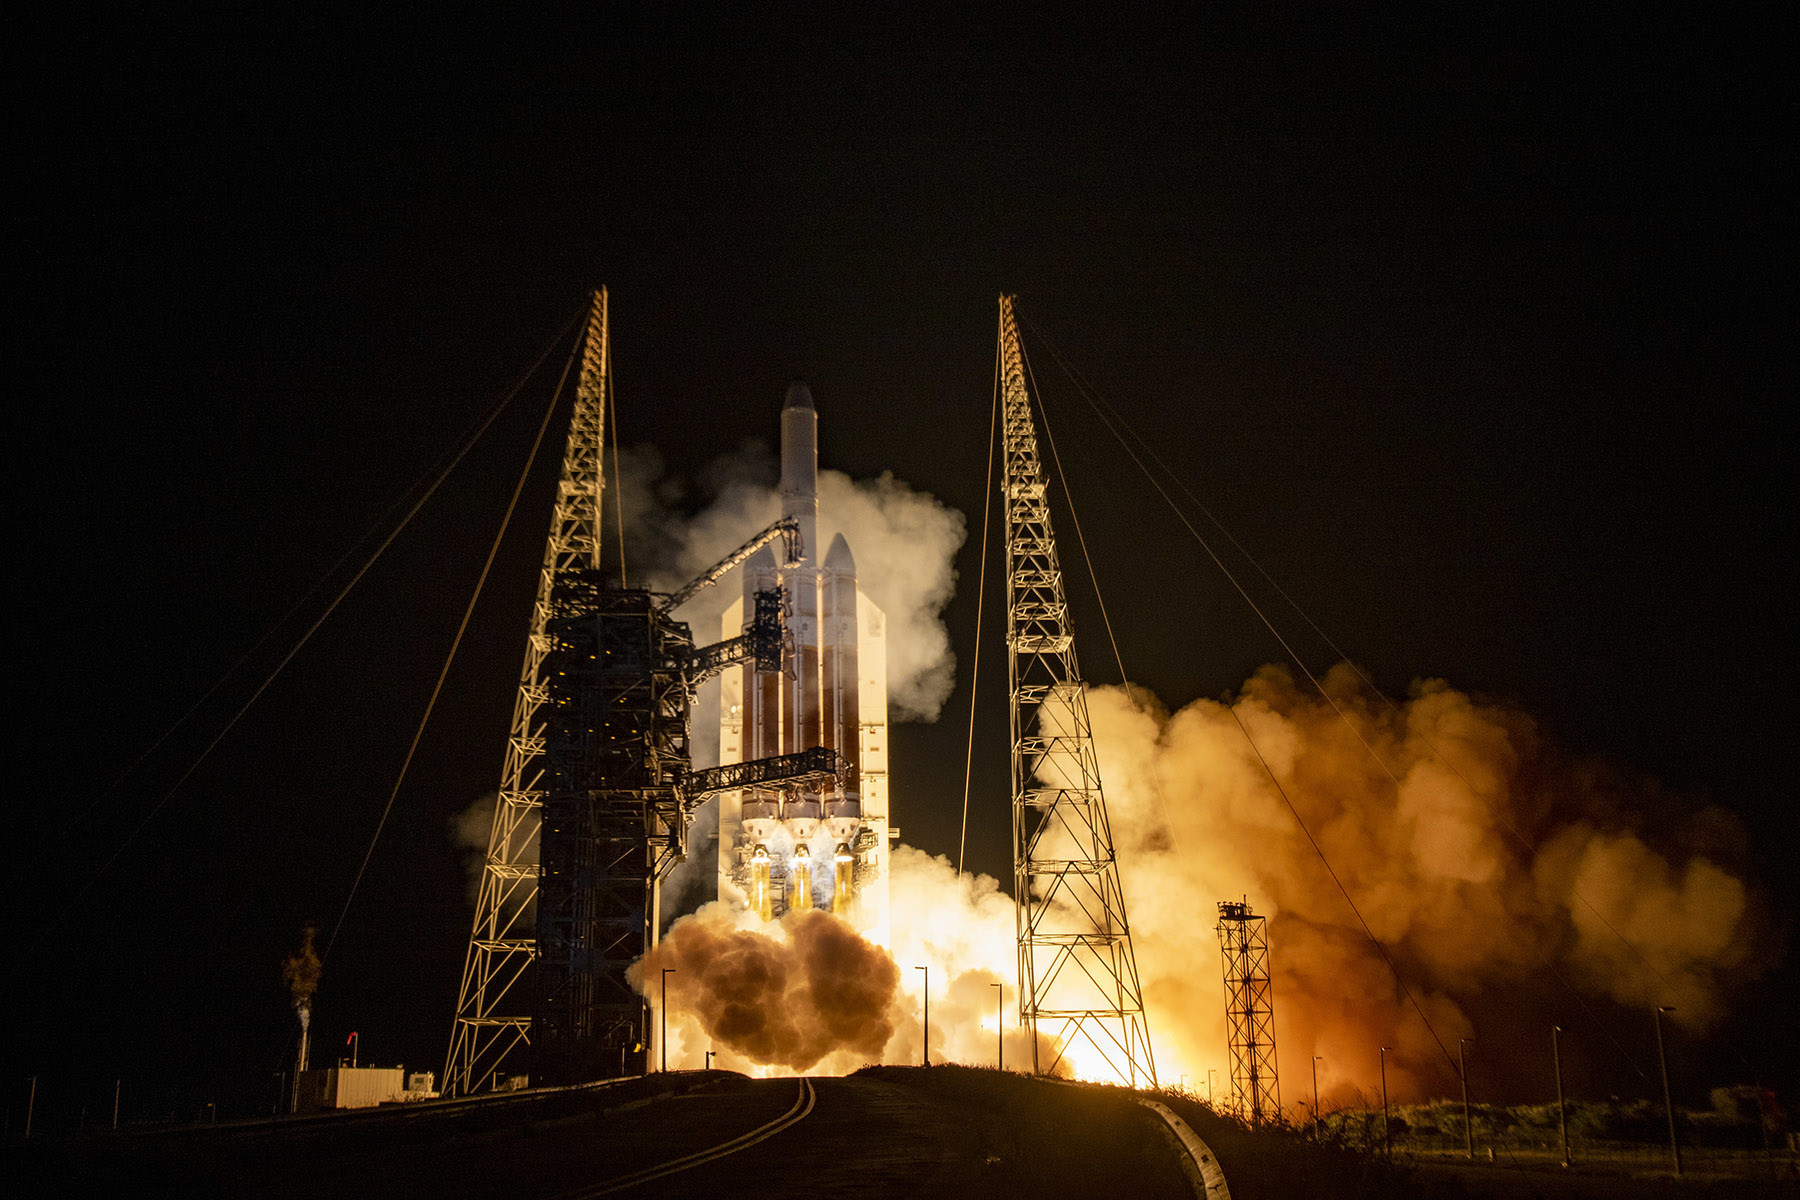 United Launch Alliance Successfully Launches NROL-44 Mission to Support National Security